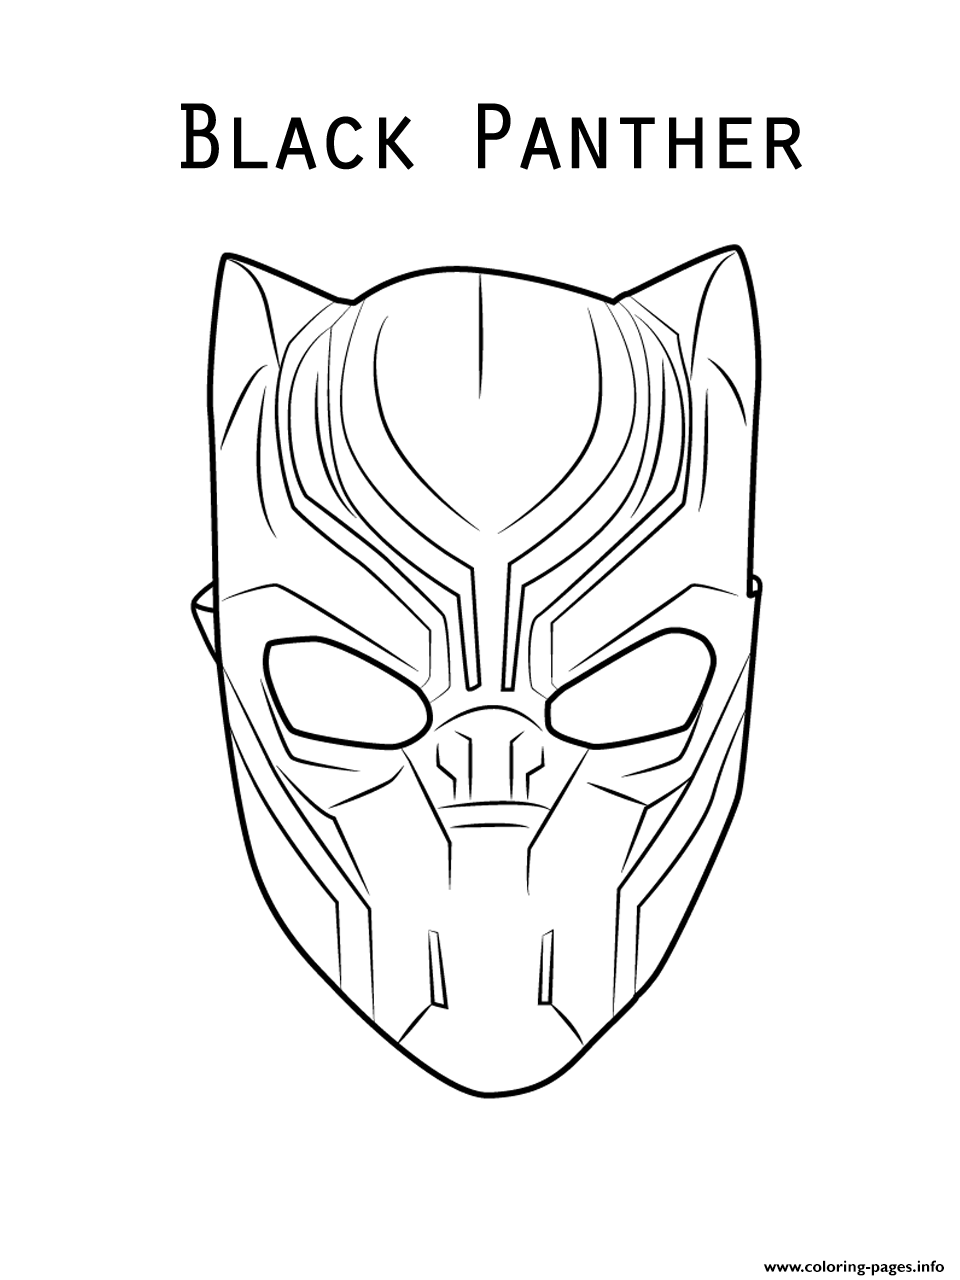 Print marvel movie black panther mask coloring pages